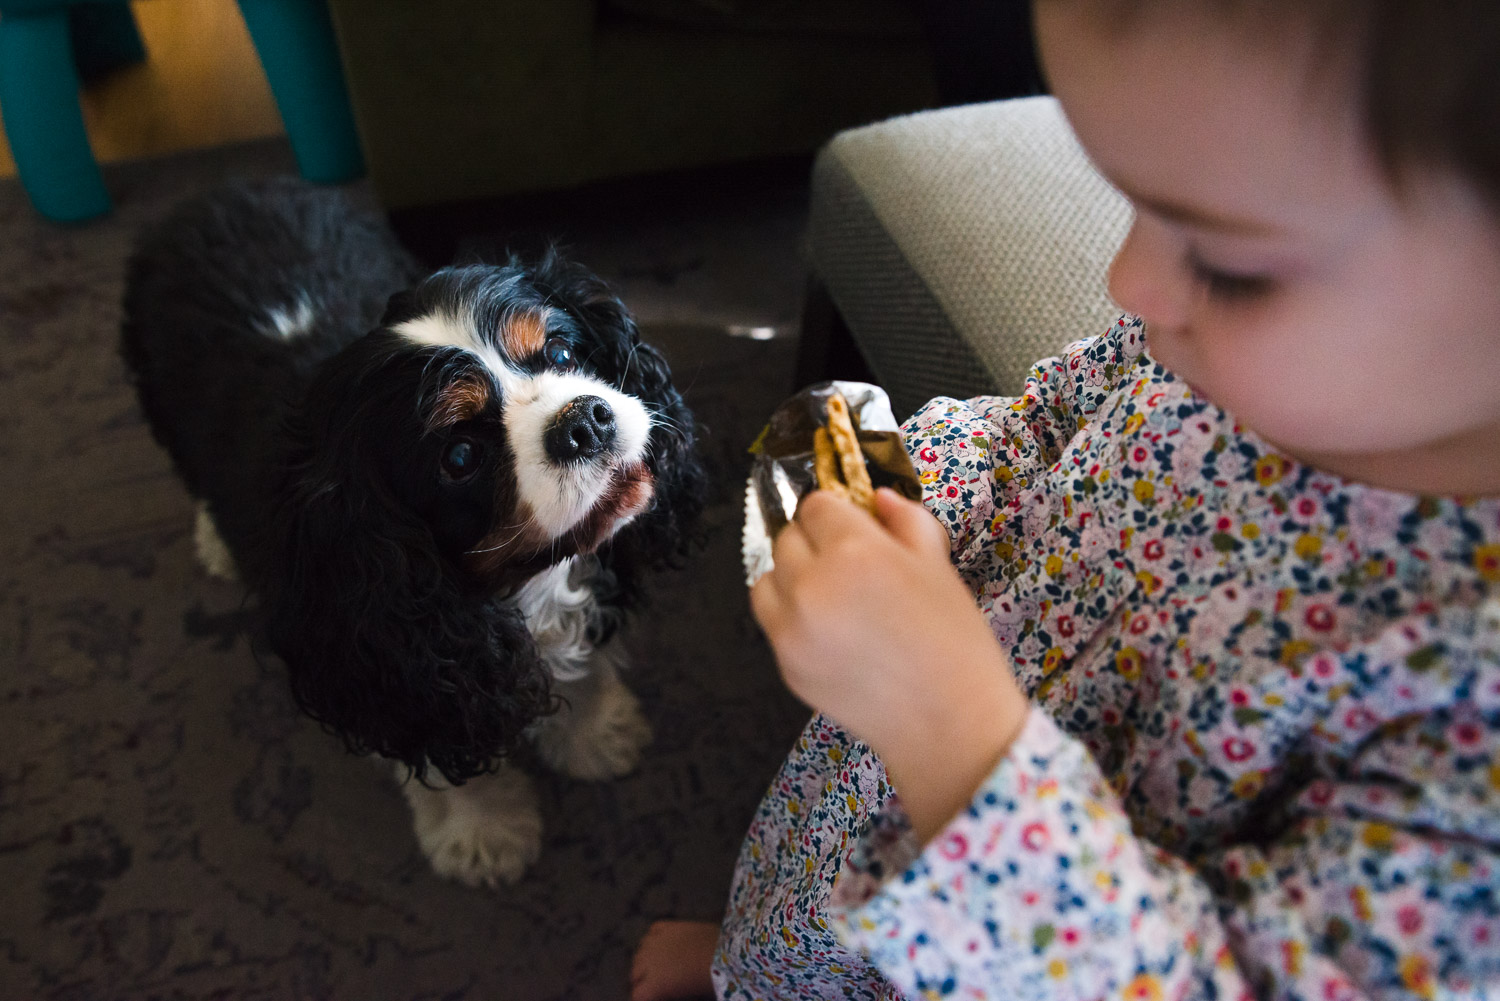 Dog looking longingly at toddler's snack.